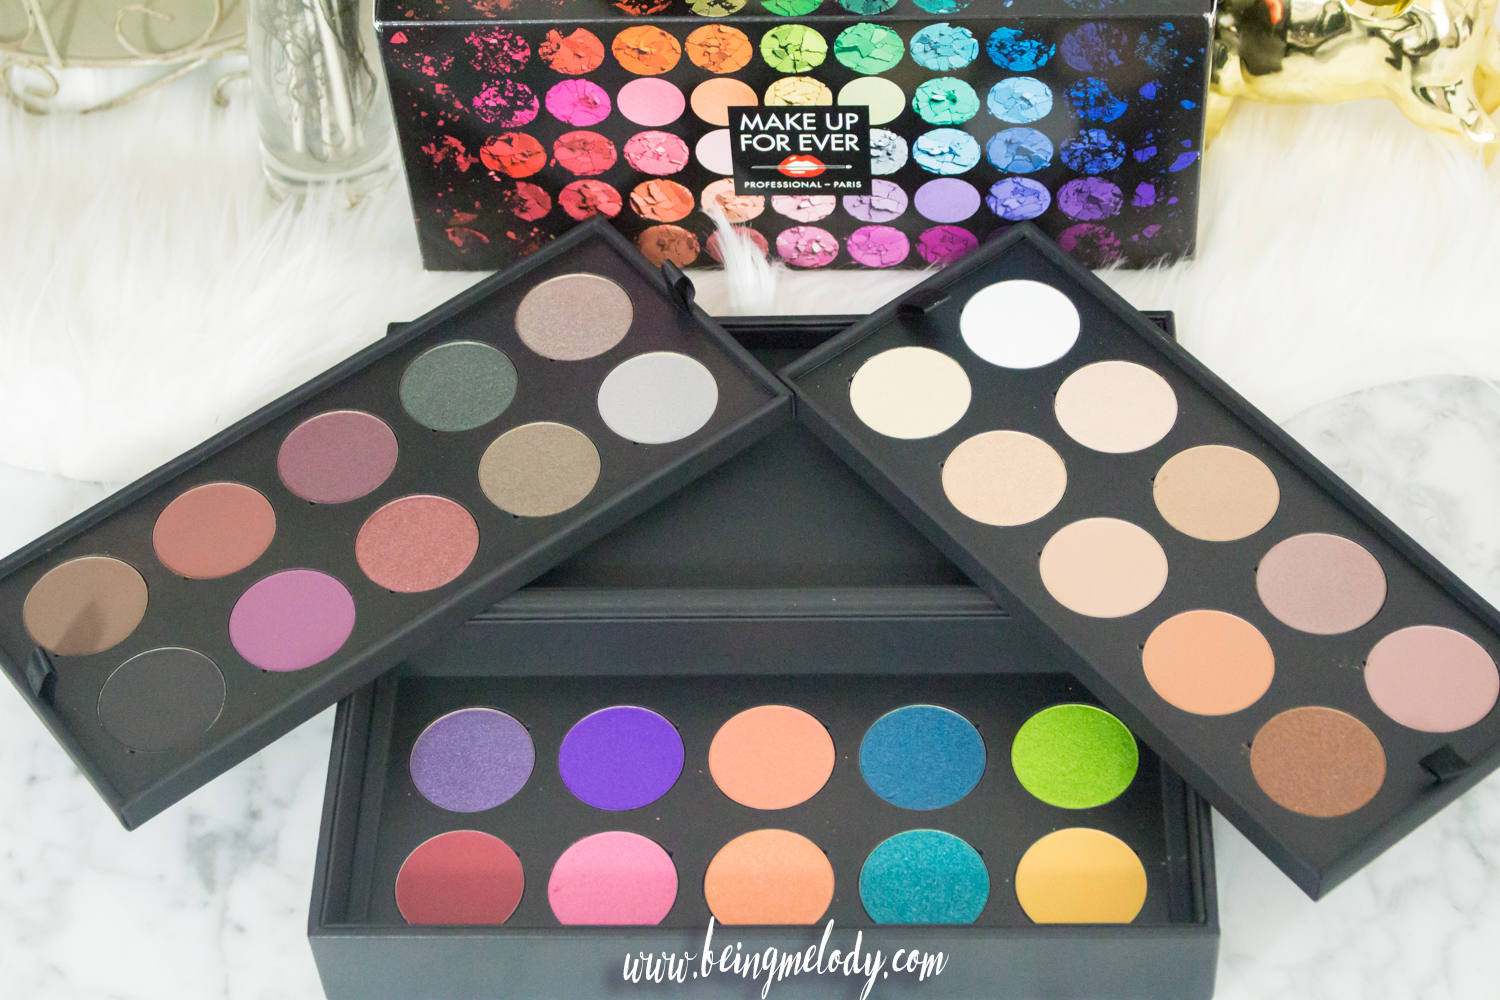 Make Up For Ever Artist Eyeshadow Collector's Palette Available Cyber Monday!